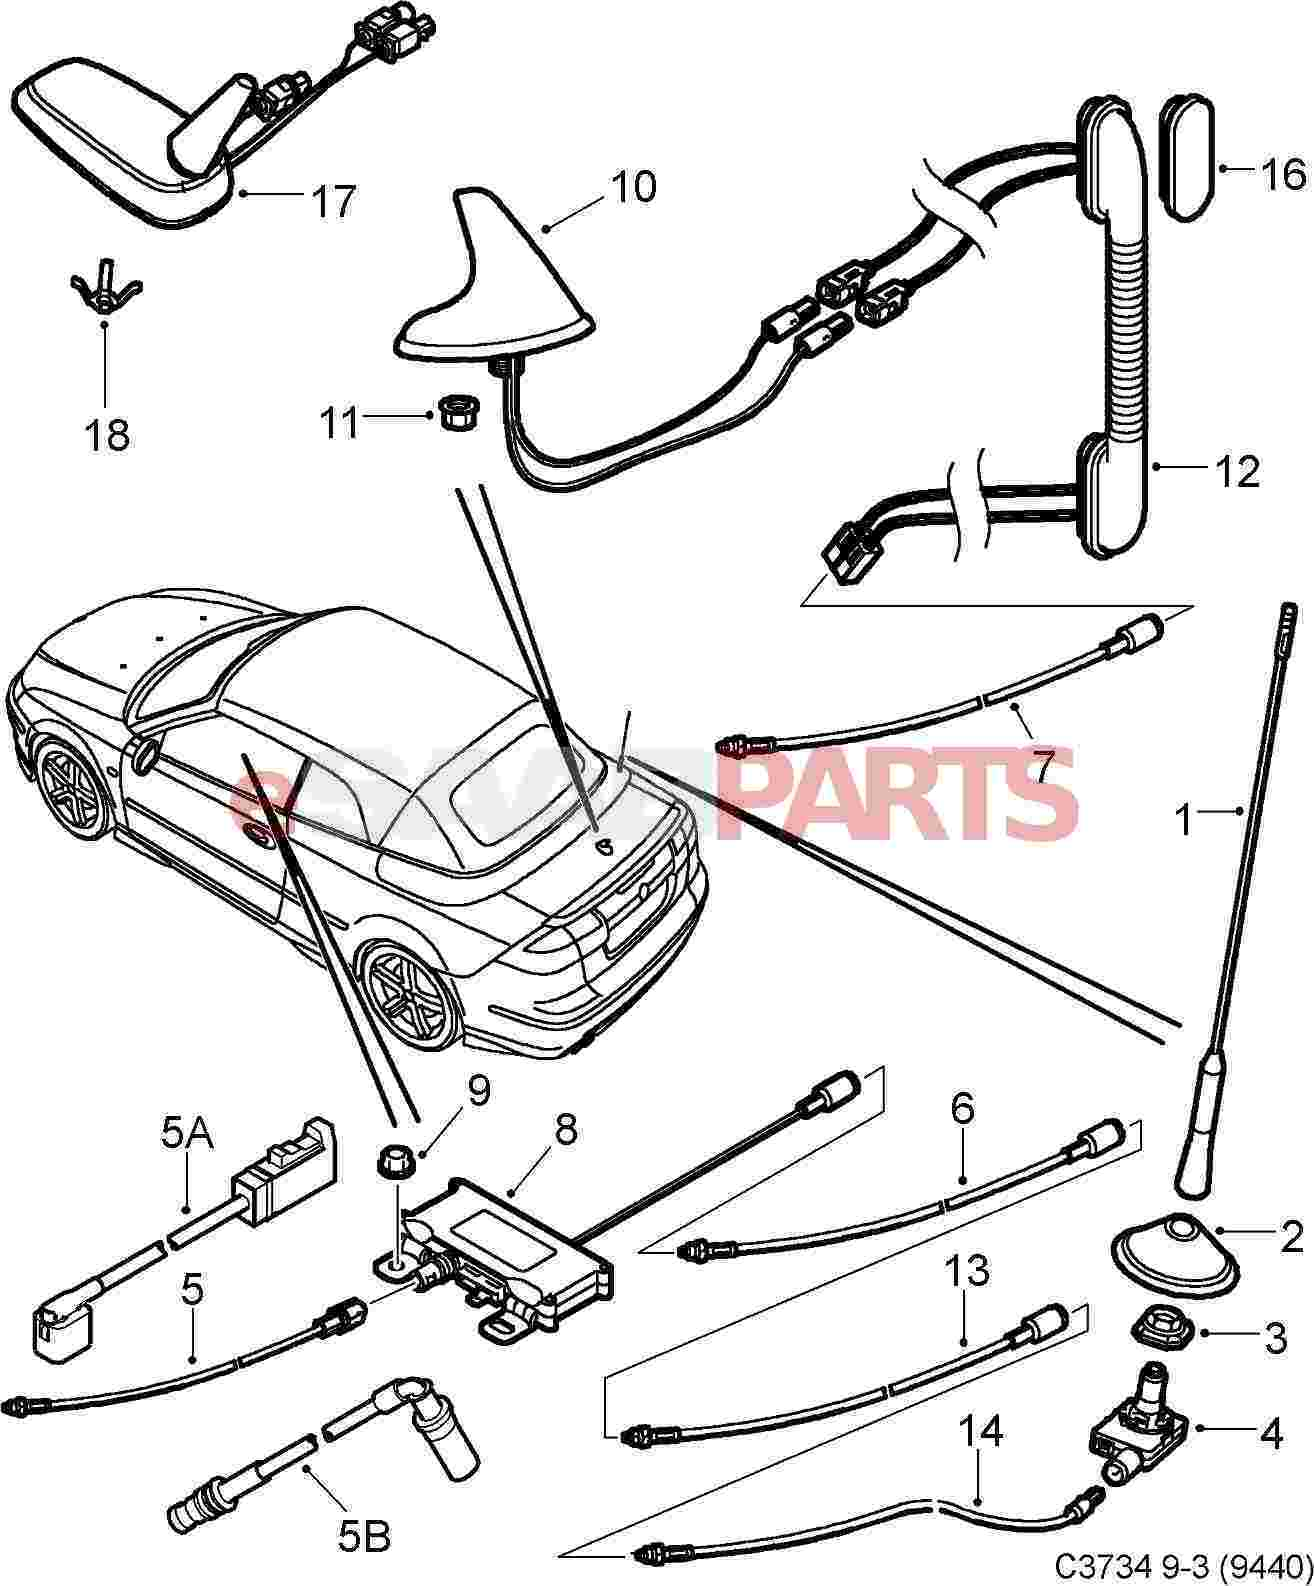 ... 99 Saab 9 3 Parts Diagram • Wiring Diagram For Free ...